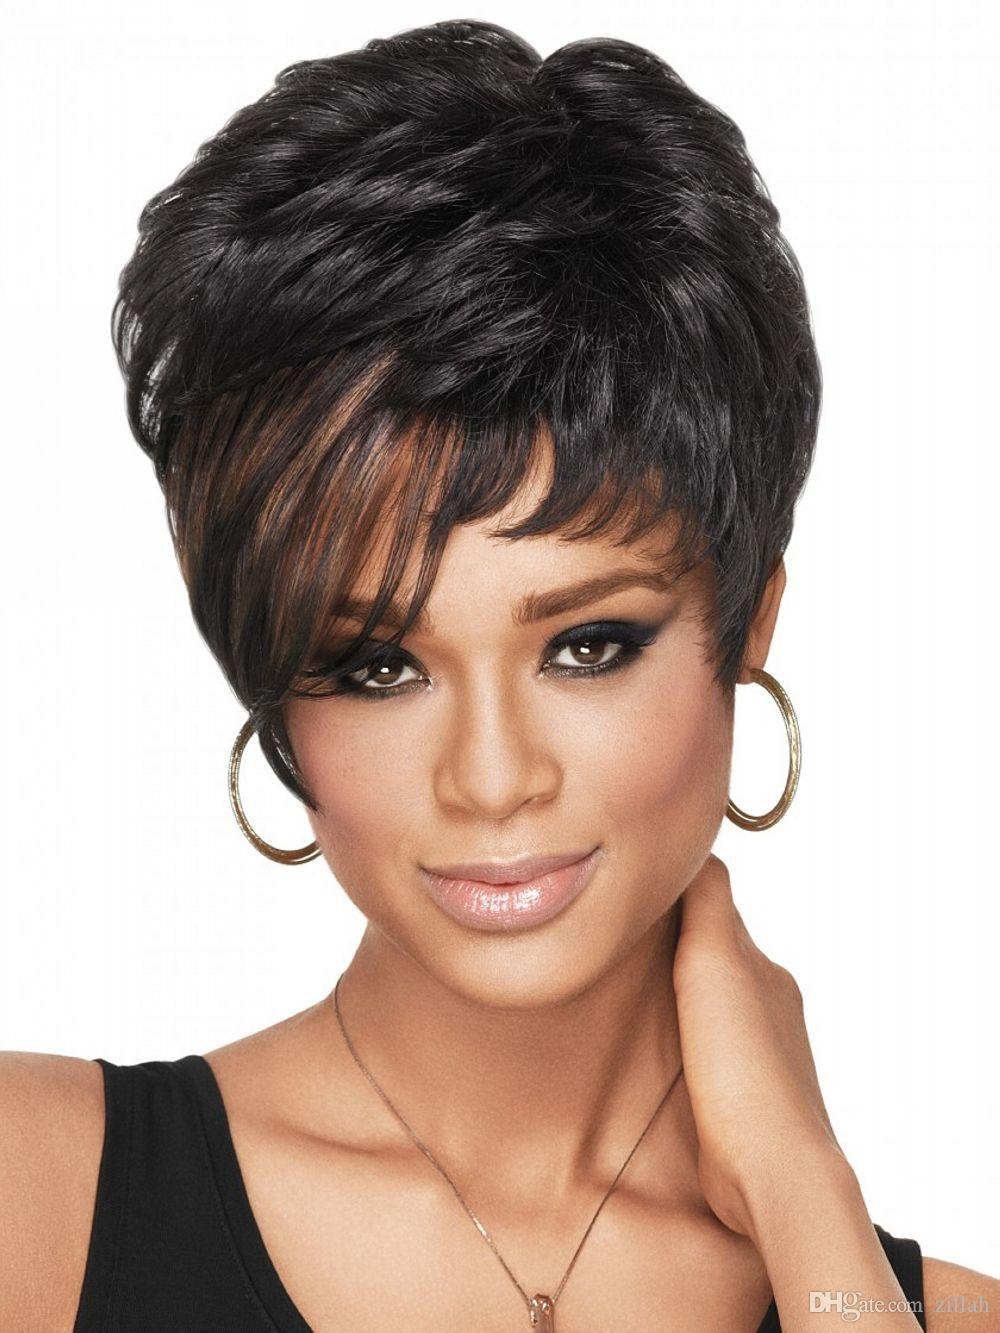 Wondrous Discount Cool Black Hairstyles 2017 Cool Black Hairstyles On Hairstyles For Women Draintrainus